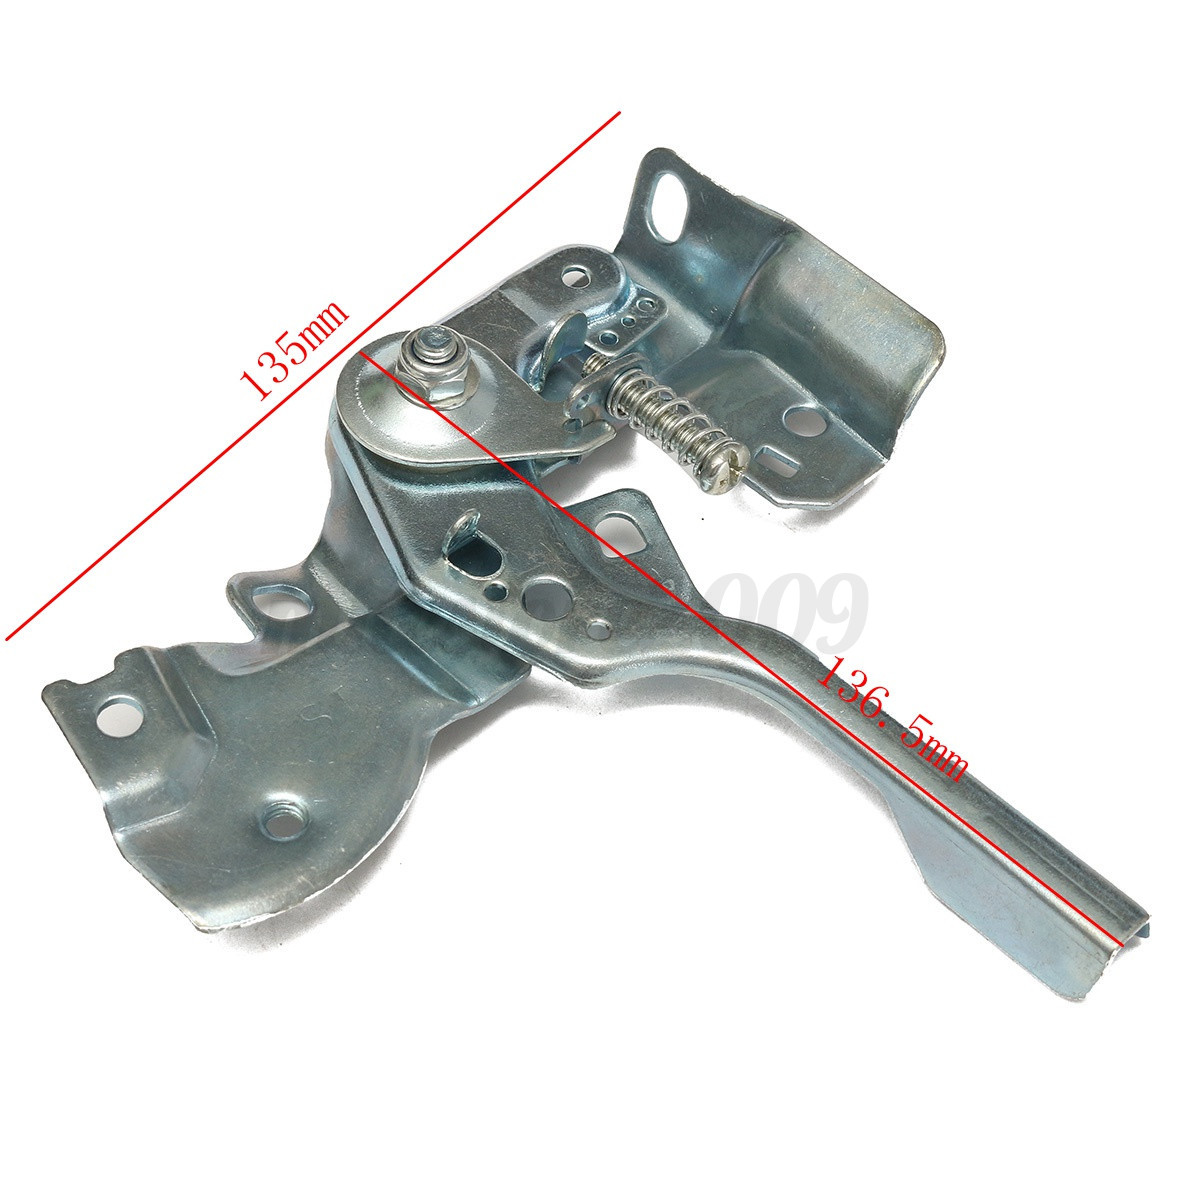 Honda Gx140 Governor Linkage Diagram Throttle Control Lever Arm Assembly For 1200x1200